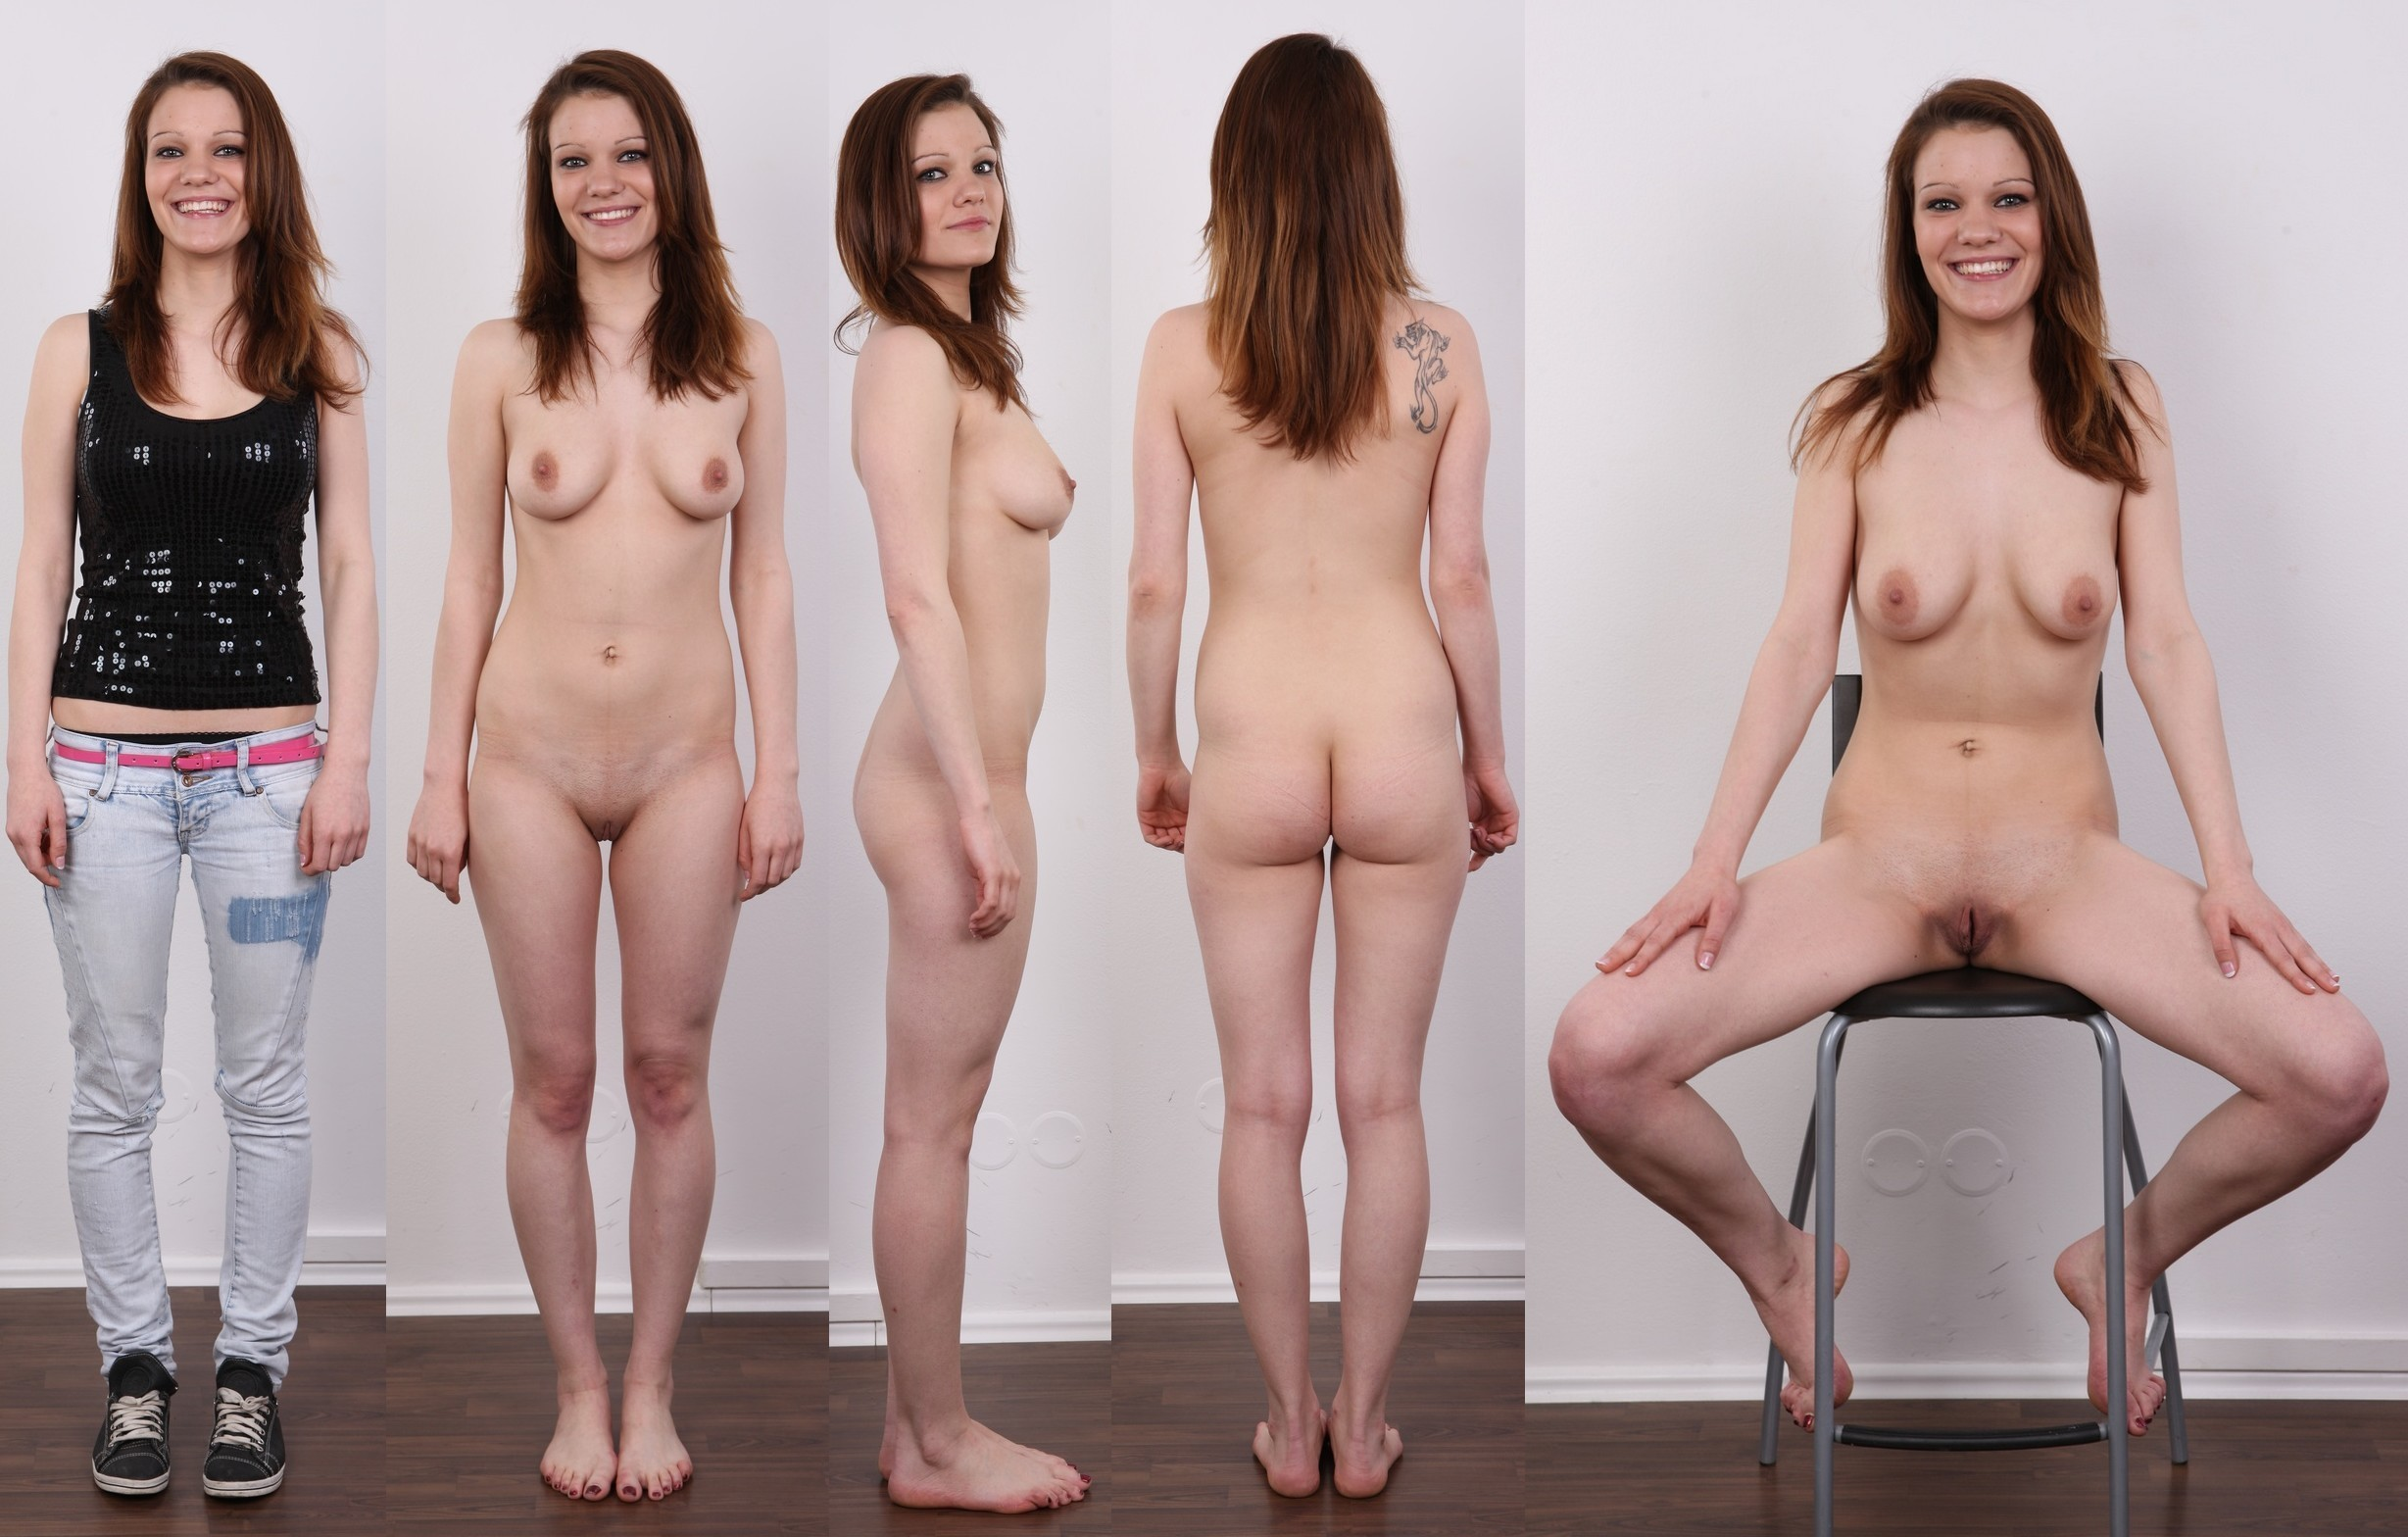 clothes-off-nude-optical-illusion-video-naked-girl